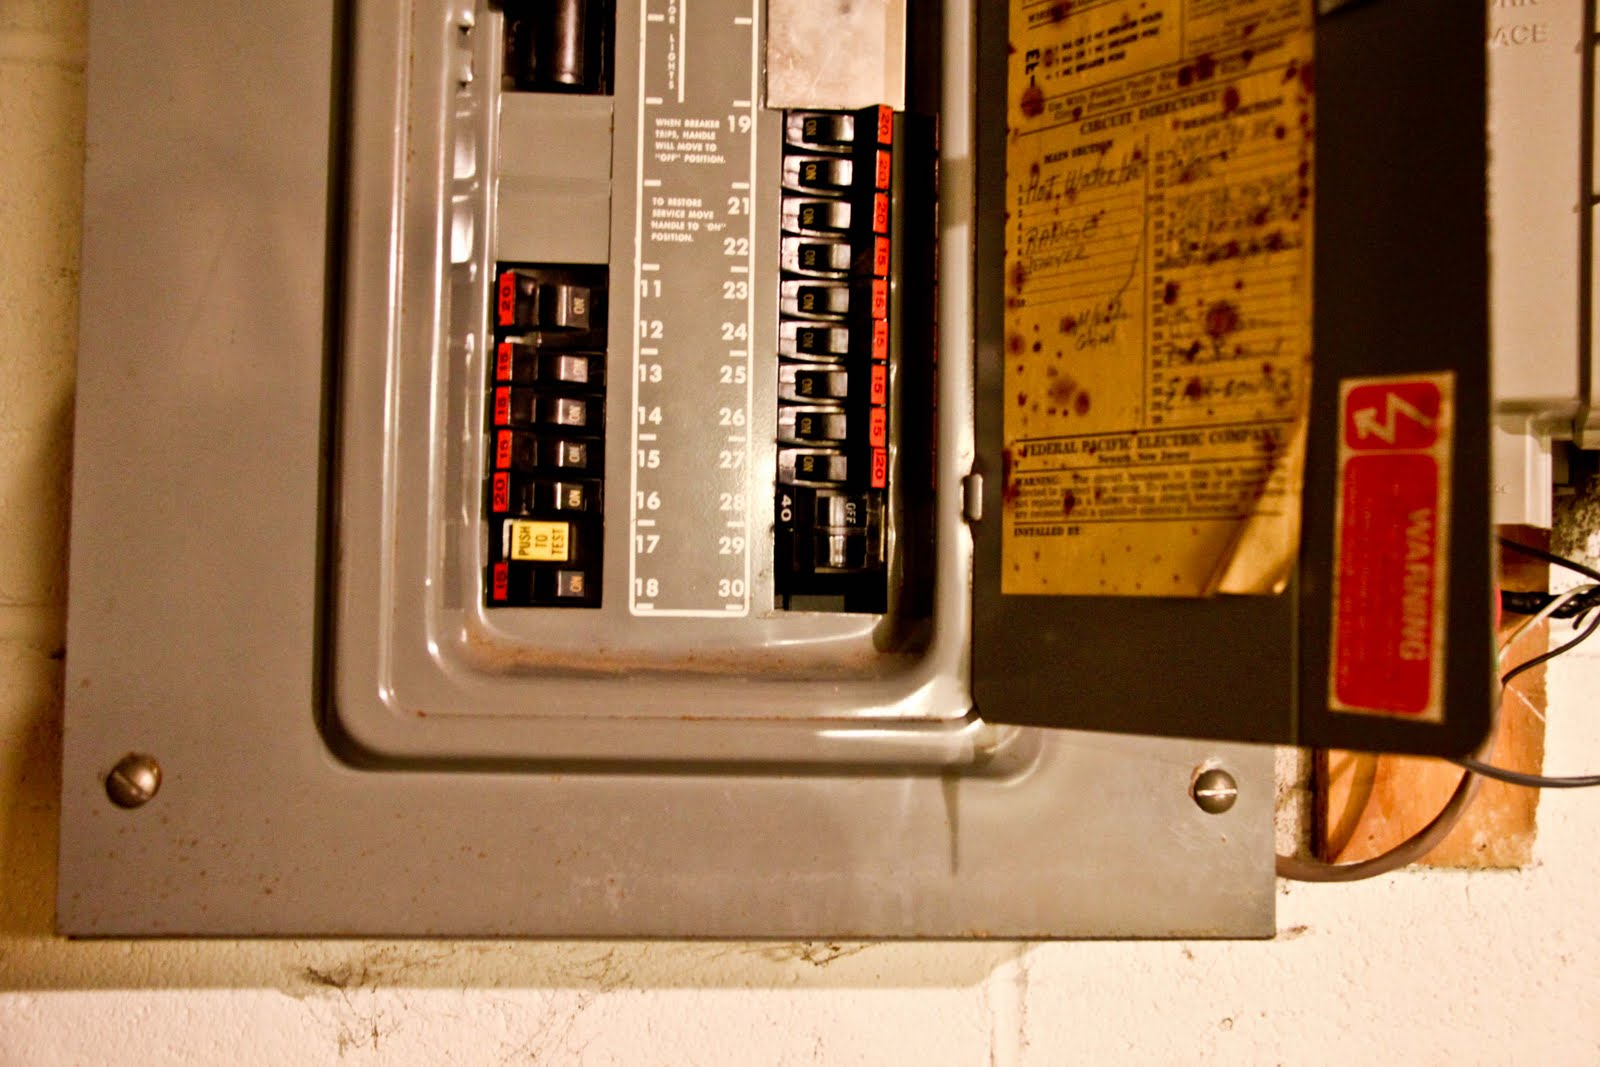 IMG_4614 replacing fuse on central ac unit work space Car Fuse Box Fuse Symbol at nearapp.co